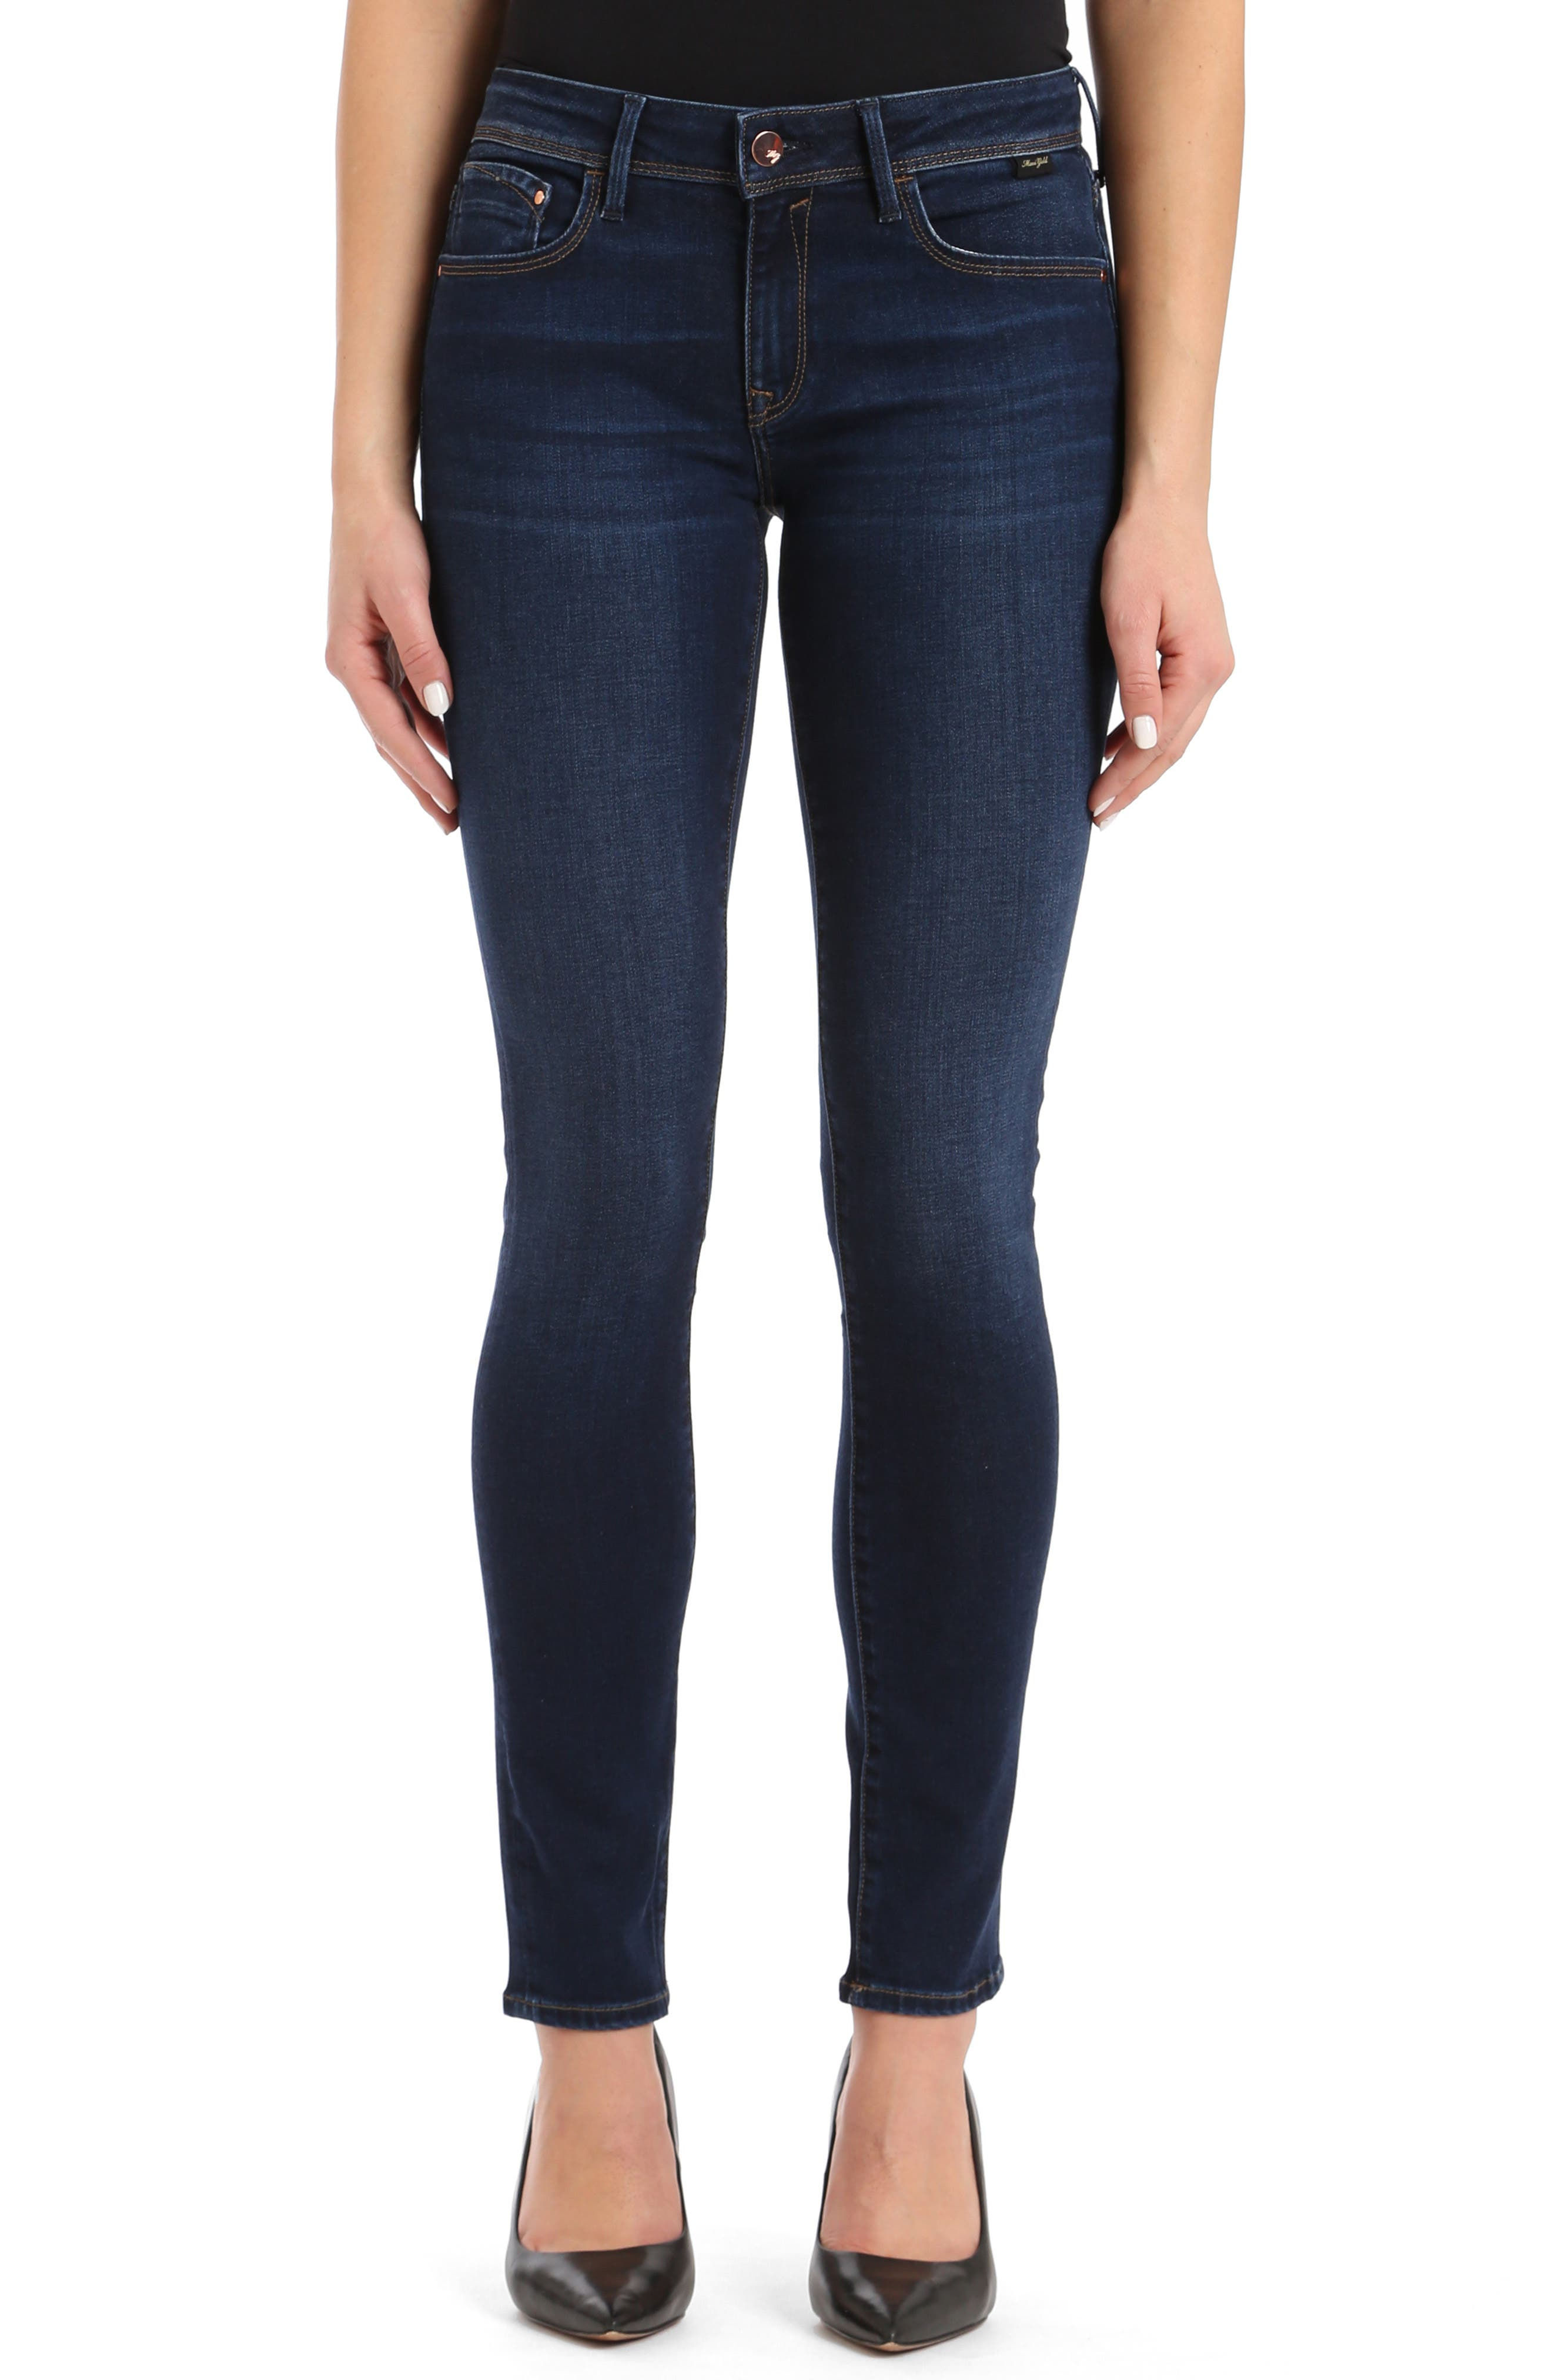 Alexa Skinny Jeans,                             Main thumbnail 1, color,                             DEEP SOFT GOLD LUX MOVE